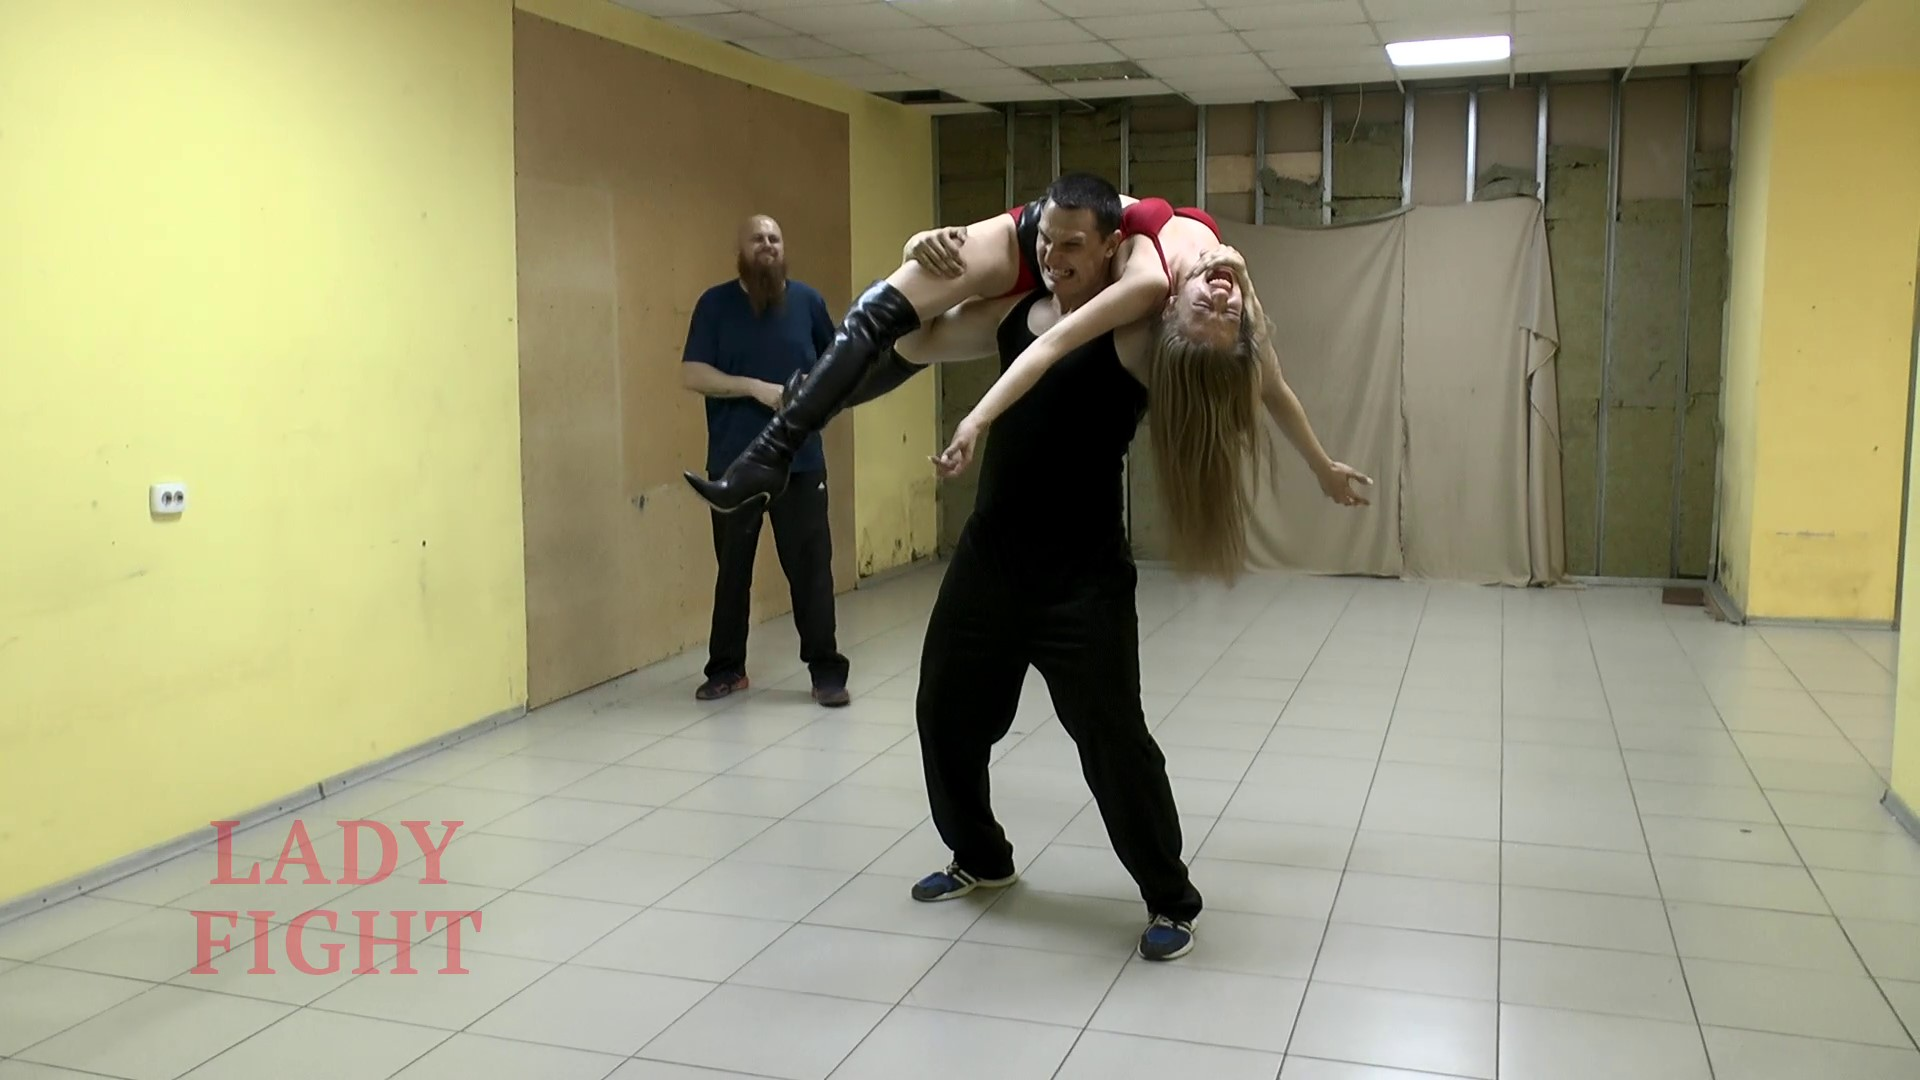 LADYFIGHT-Deadly-Wrestling-For-Lora-96